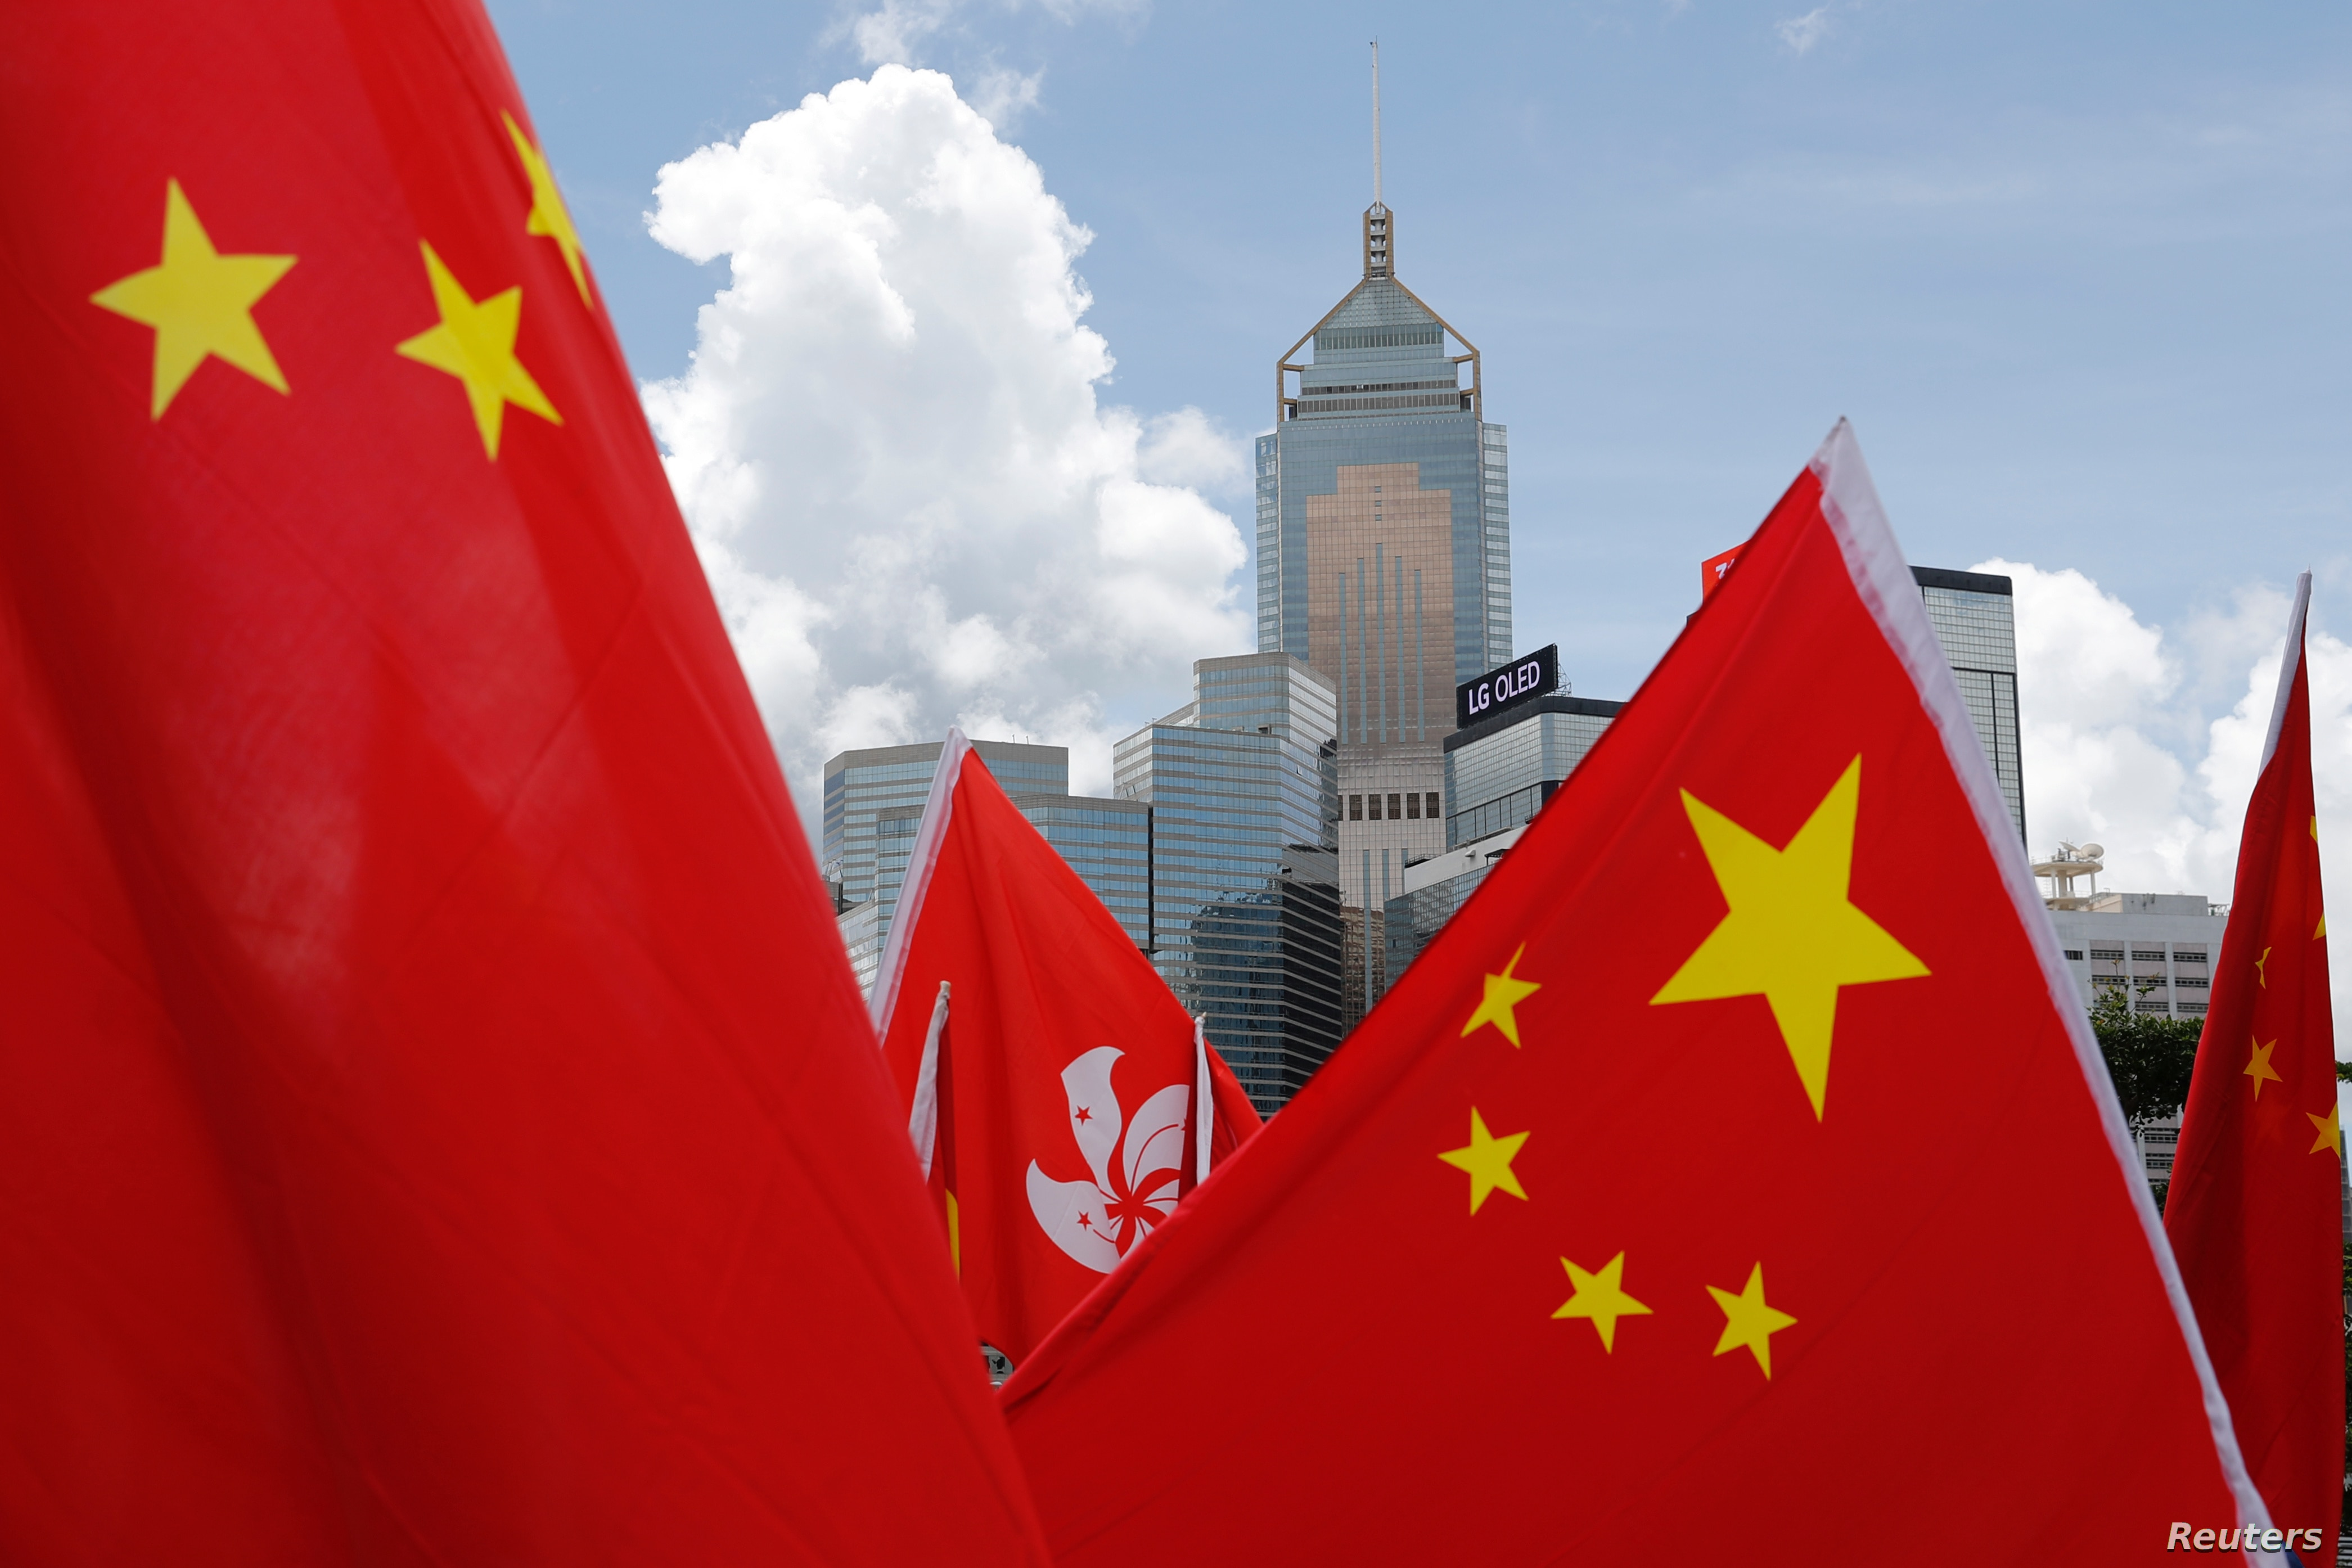 Buildings are seen above Hong Kong and Chinese flags as pro China supporters celebration after China's parliament passes national security law for Hong Kong in Hong Kong